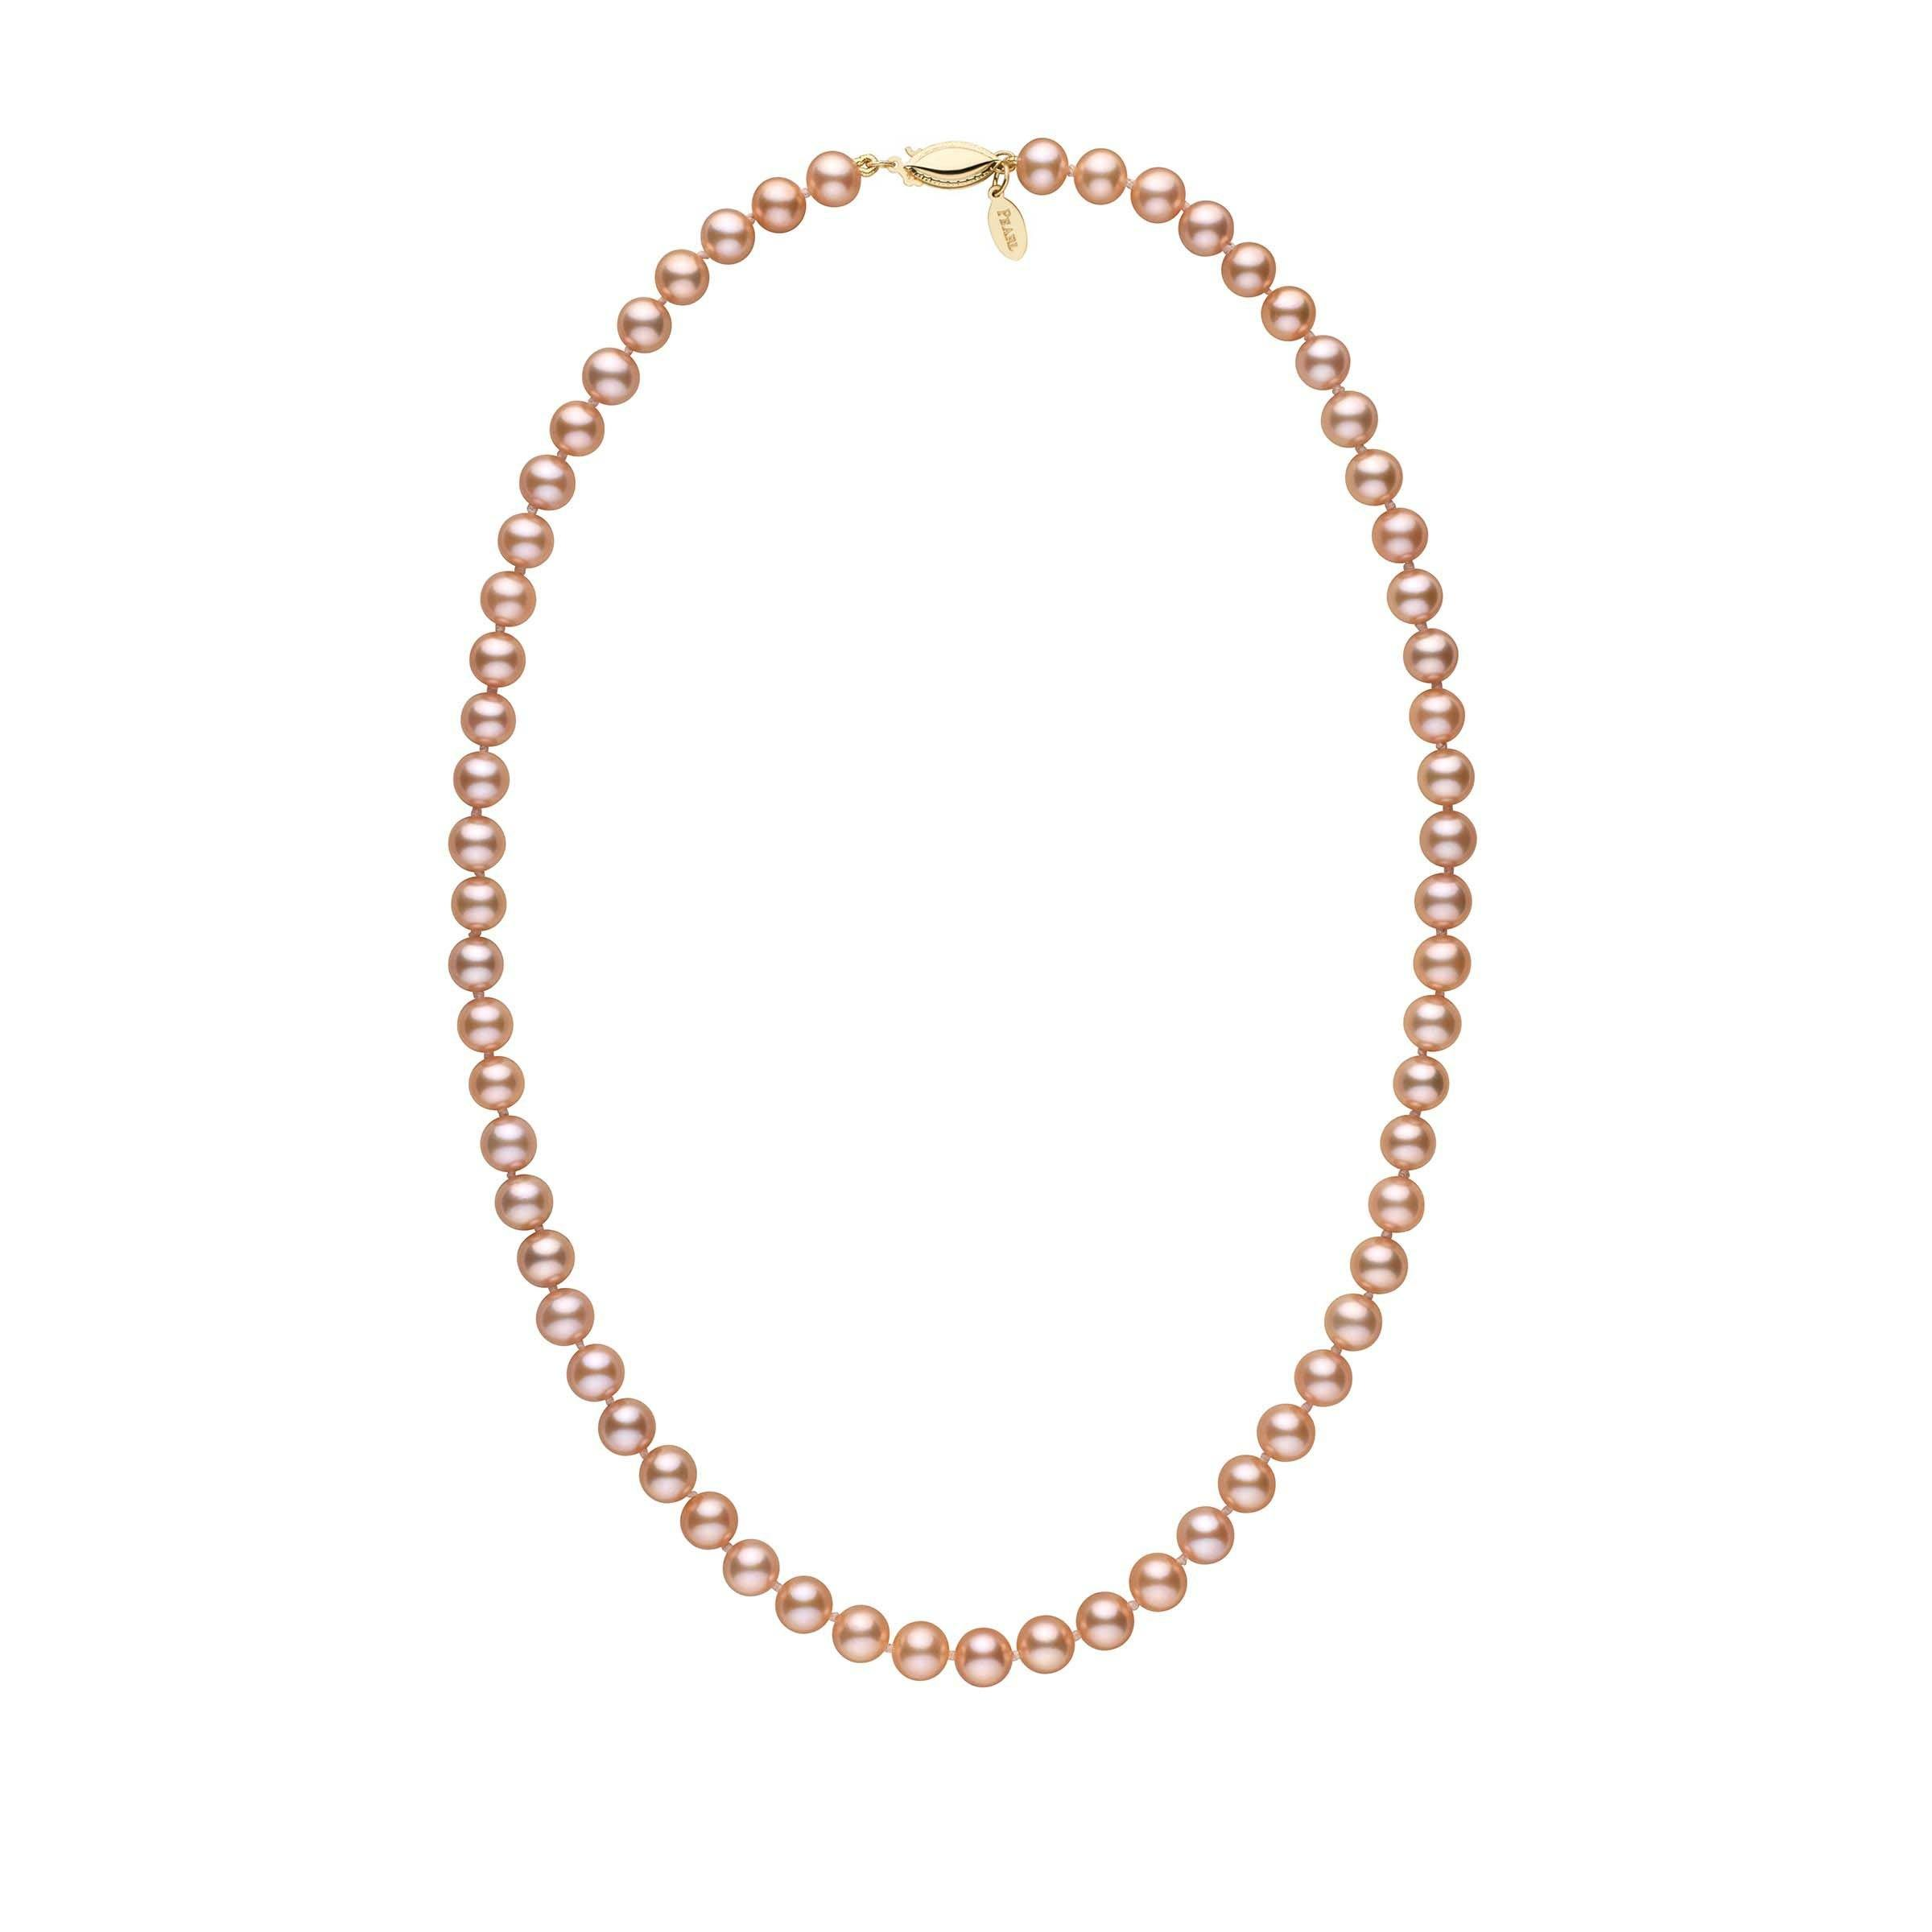 6.5-7.0 mm 18 Inch Pink to Peach Freshadama Freshwater Pearl Necklace